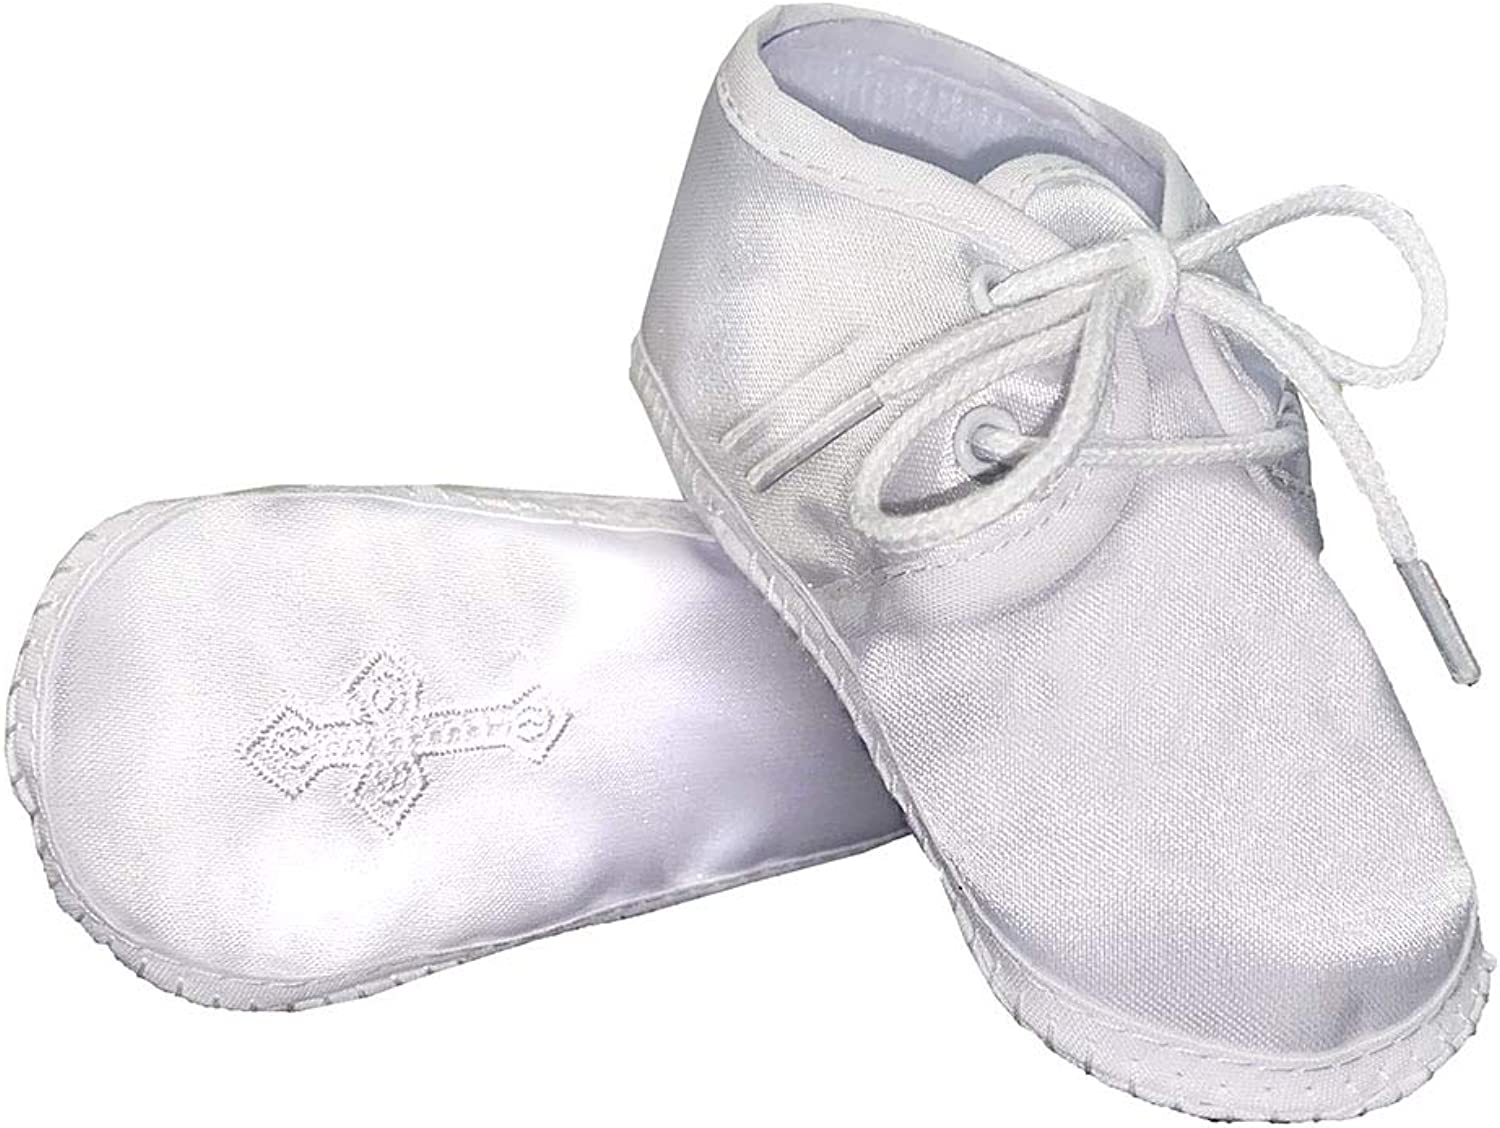 Swea Pea /& Lilli Baptism Shoes for Boys Zapatos de Bautizo White Baby Booties with Celtic Cross for Christening